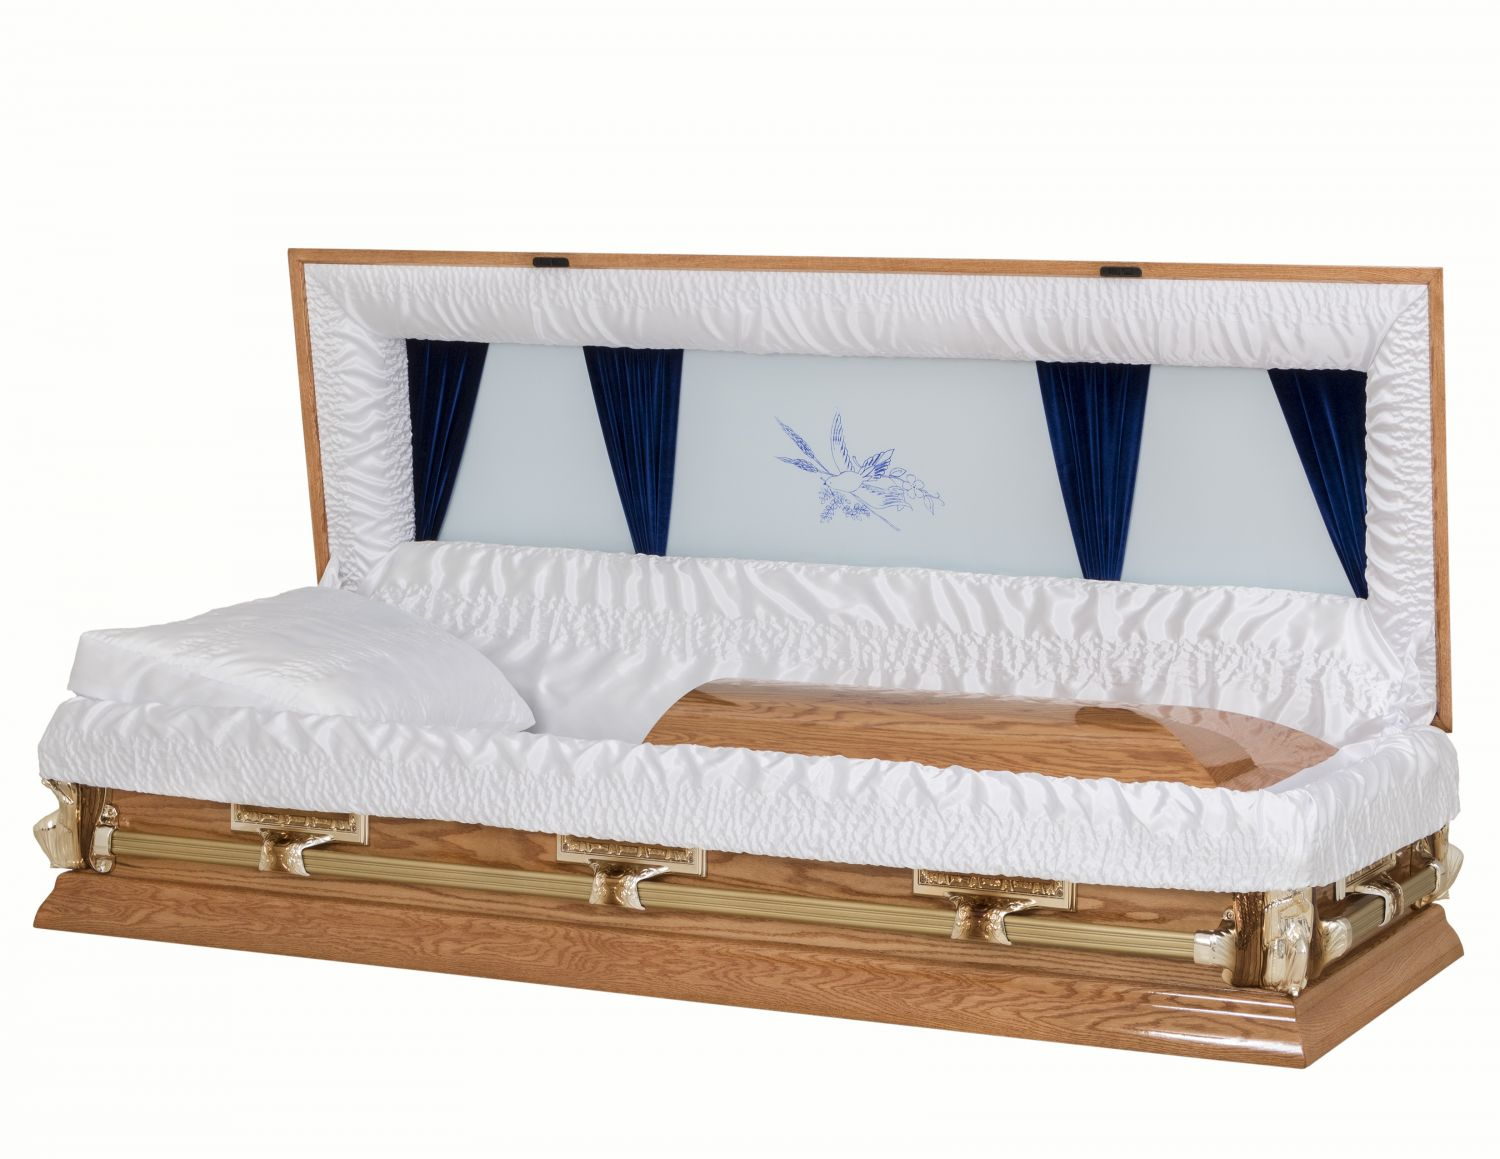 Concept Caskets 65100-00230-N OAK CASKET POLISHED  CREPE  MEDIUM MATRESS NO B8012 BUMPER 3 X 1 ANTIQUE GOLD LAST SUPPER / ANGEL